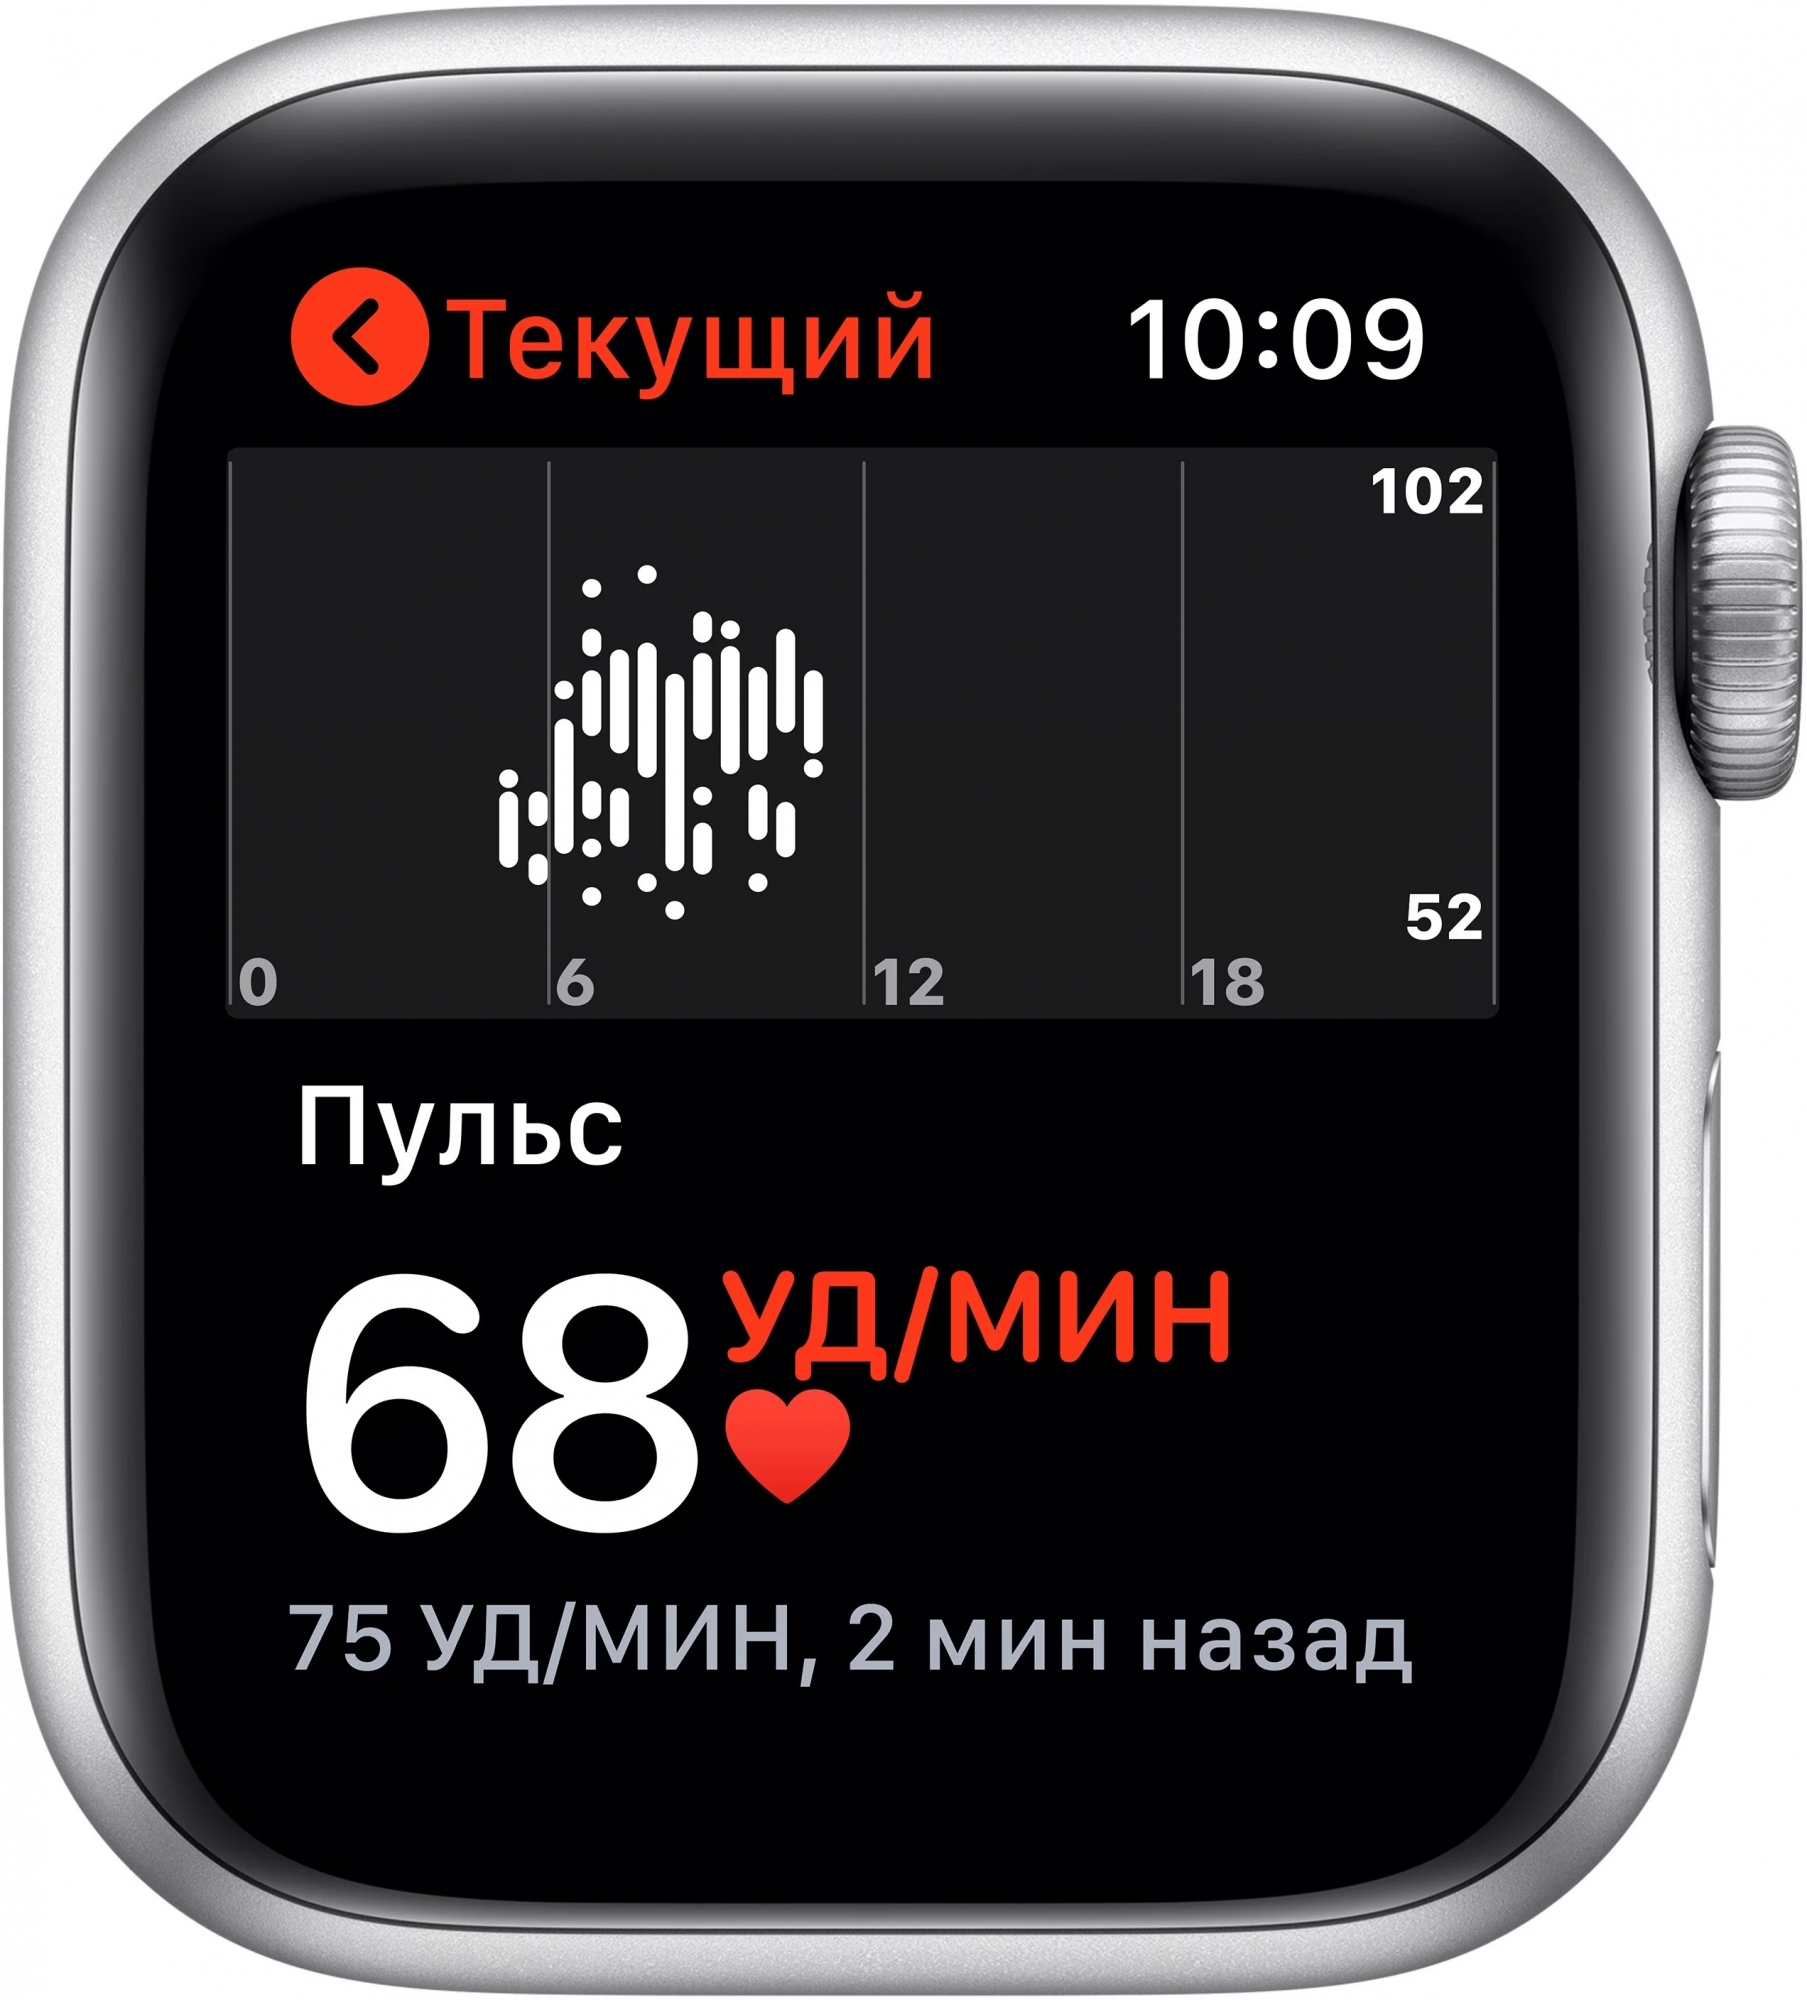 Apple Watch Series 5, 40 мм, серебристый алюминий, спортивный браслет белого цвета (MWV62)